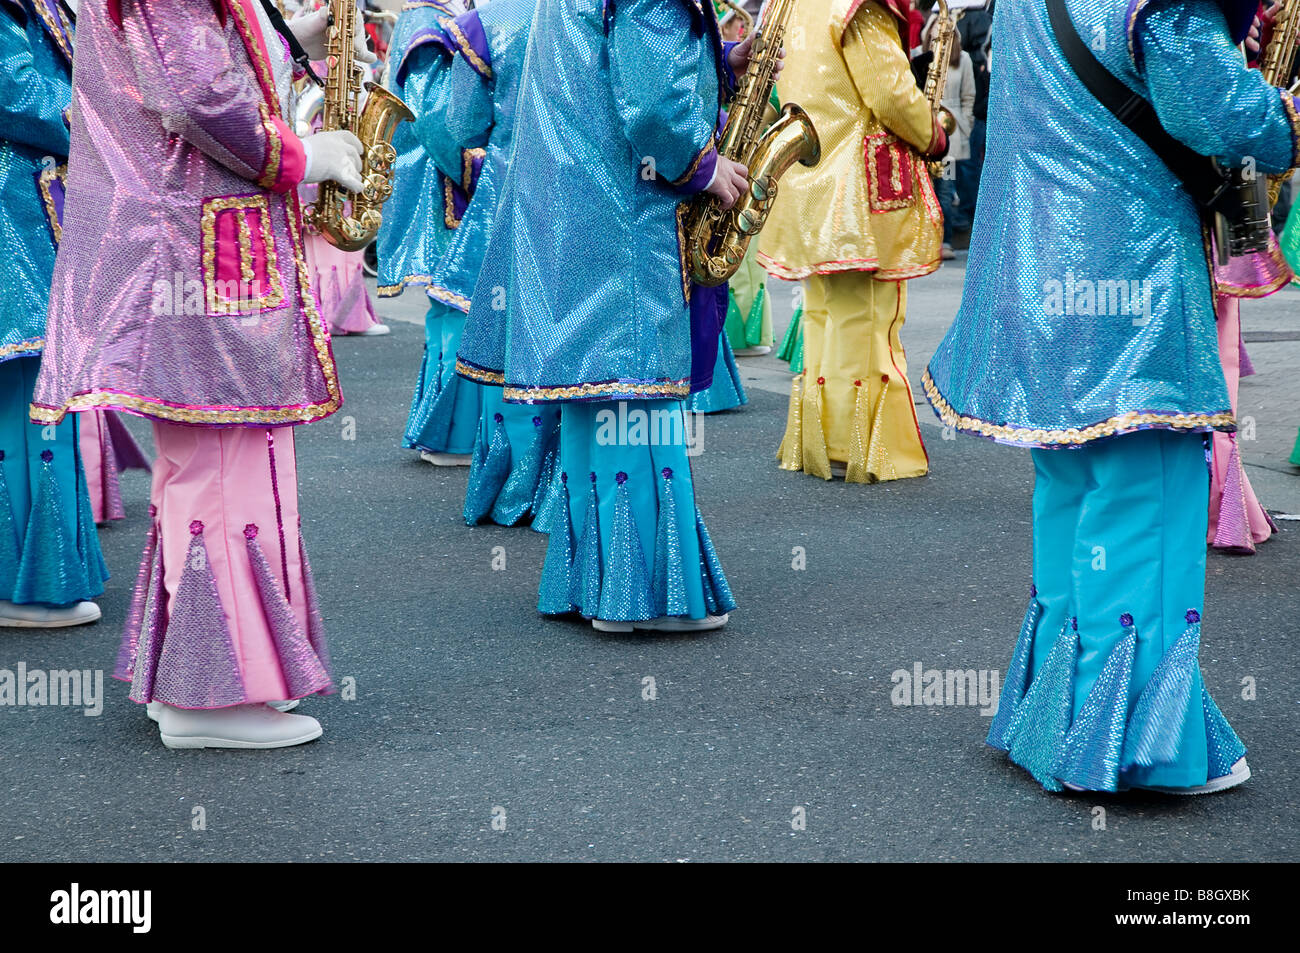 Marching Mummers band at annual parade in Philadelphia - Stock Image